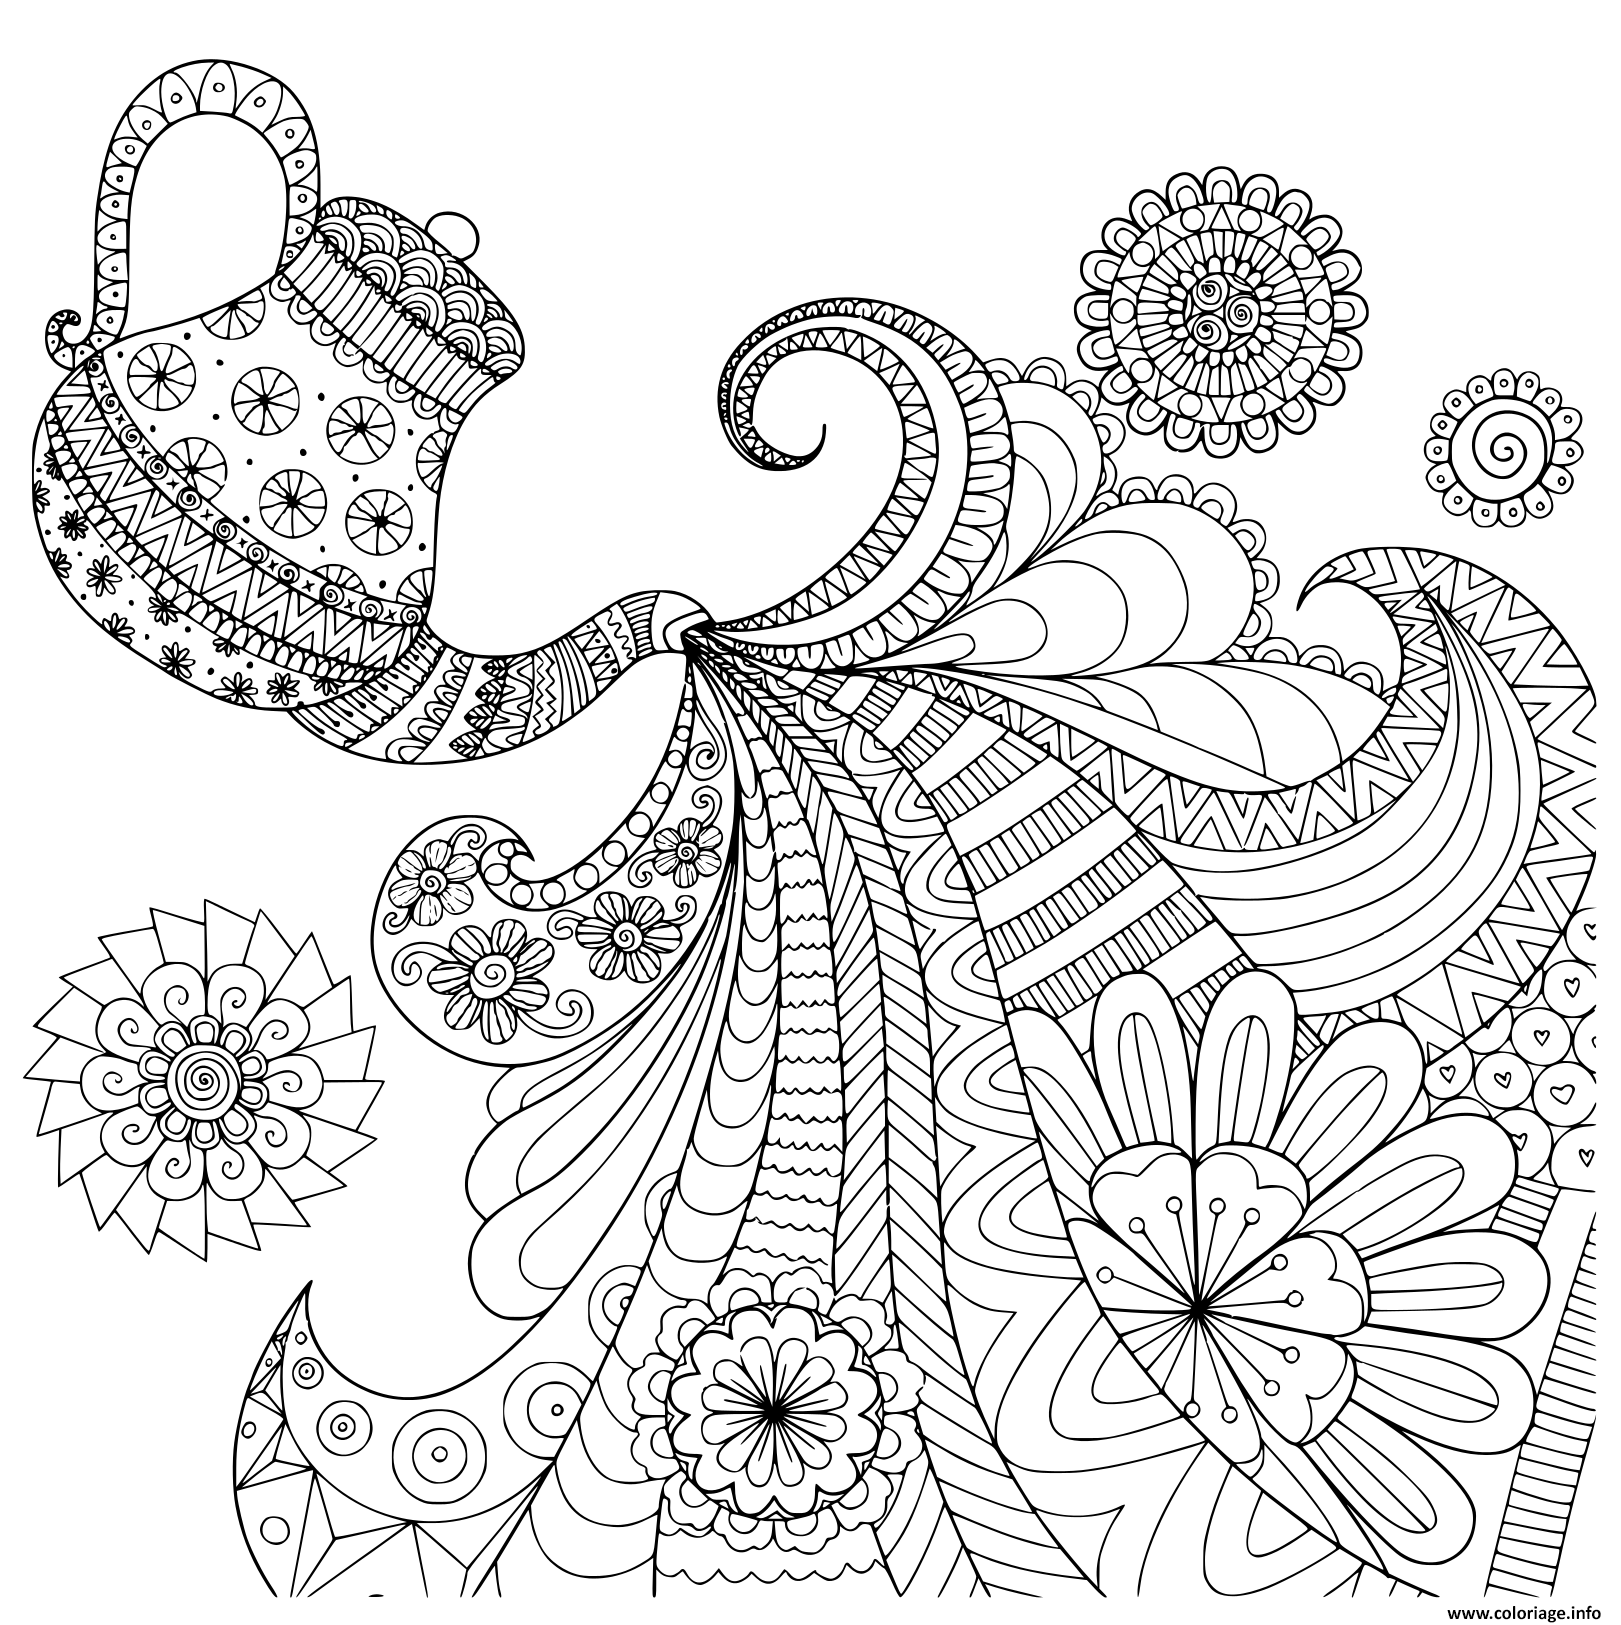 Coloriage Ligne Design De Theiere Versant The Pour Adulte Jecolorie Com